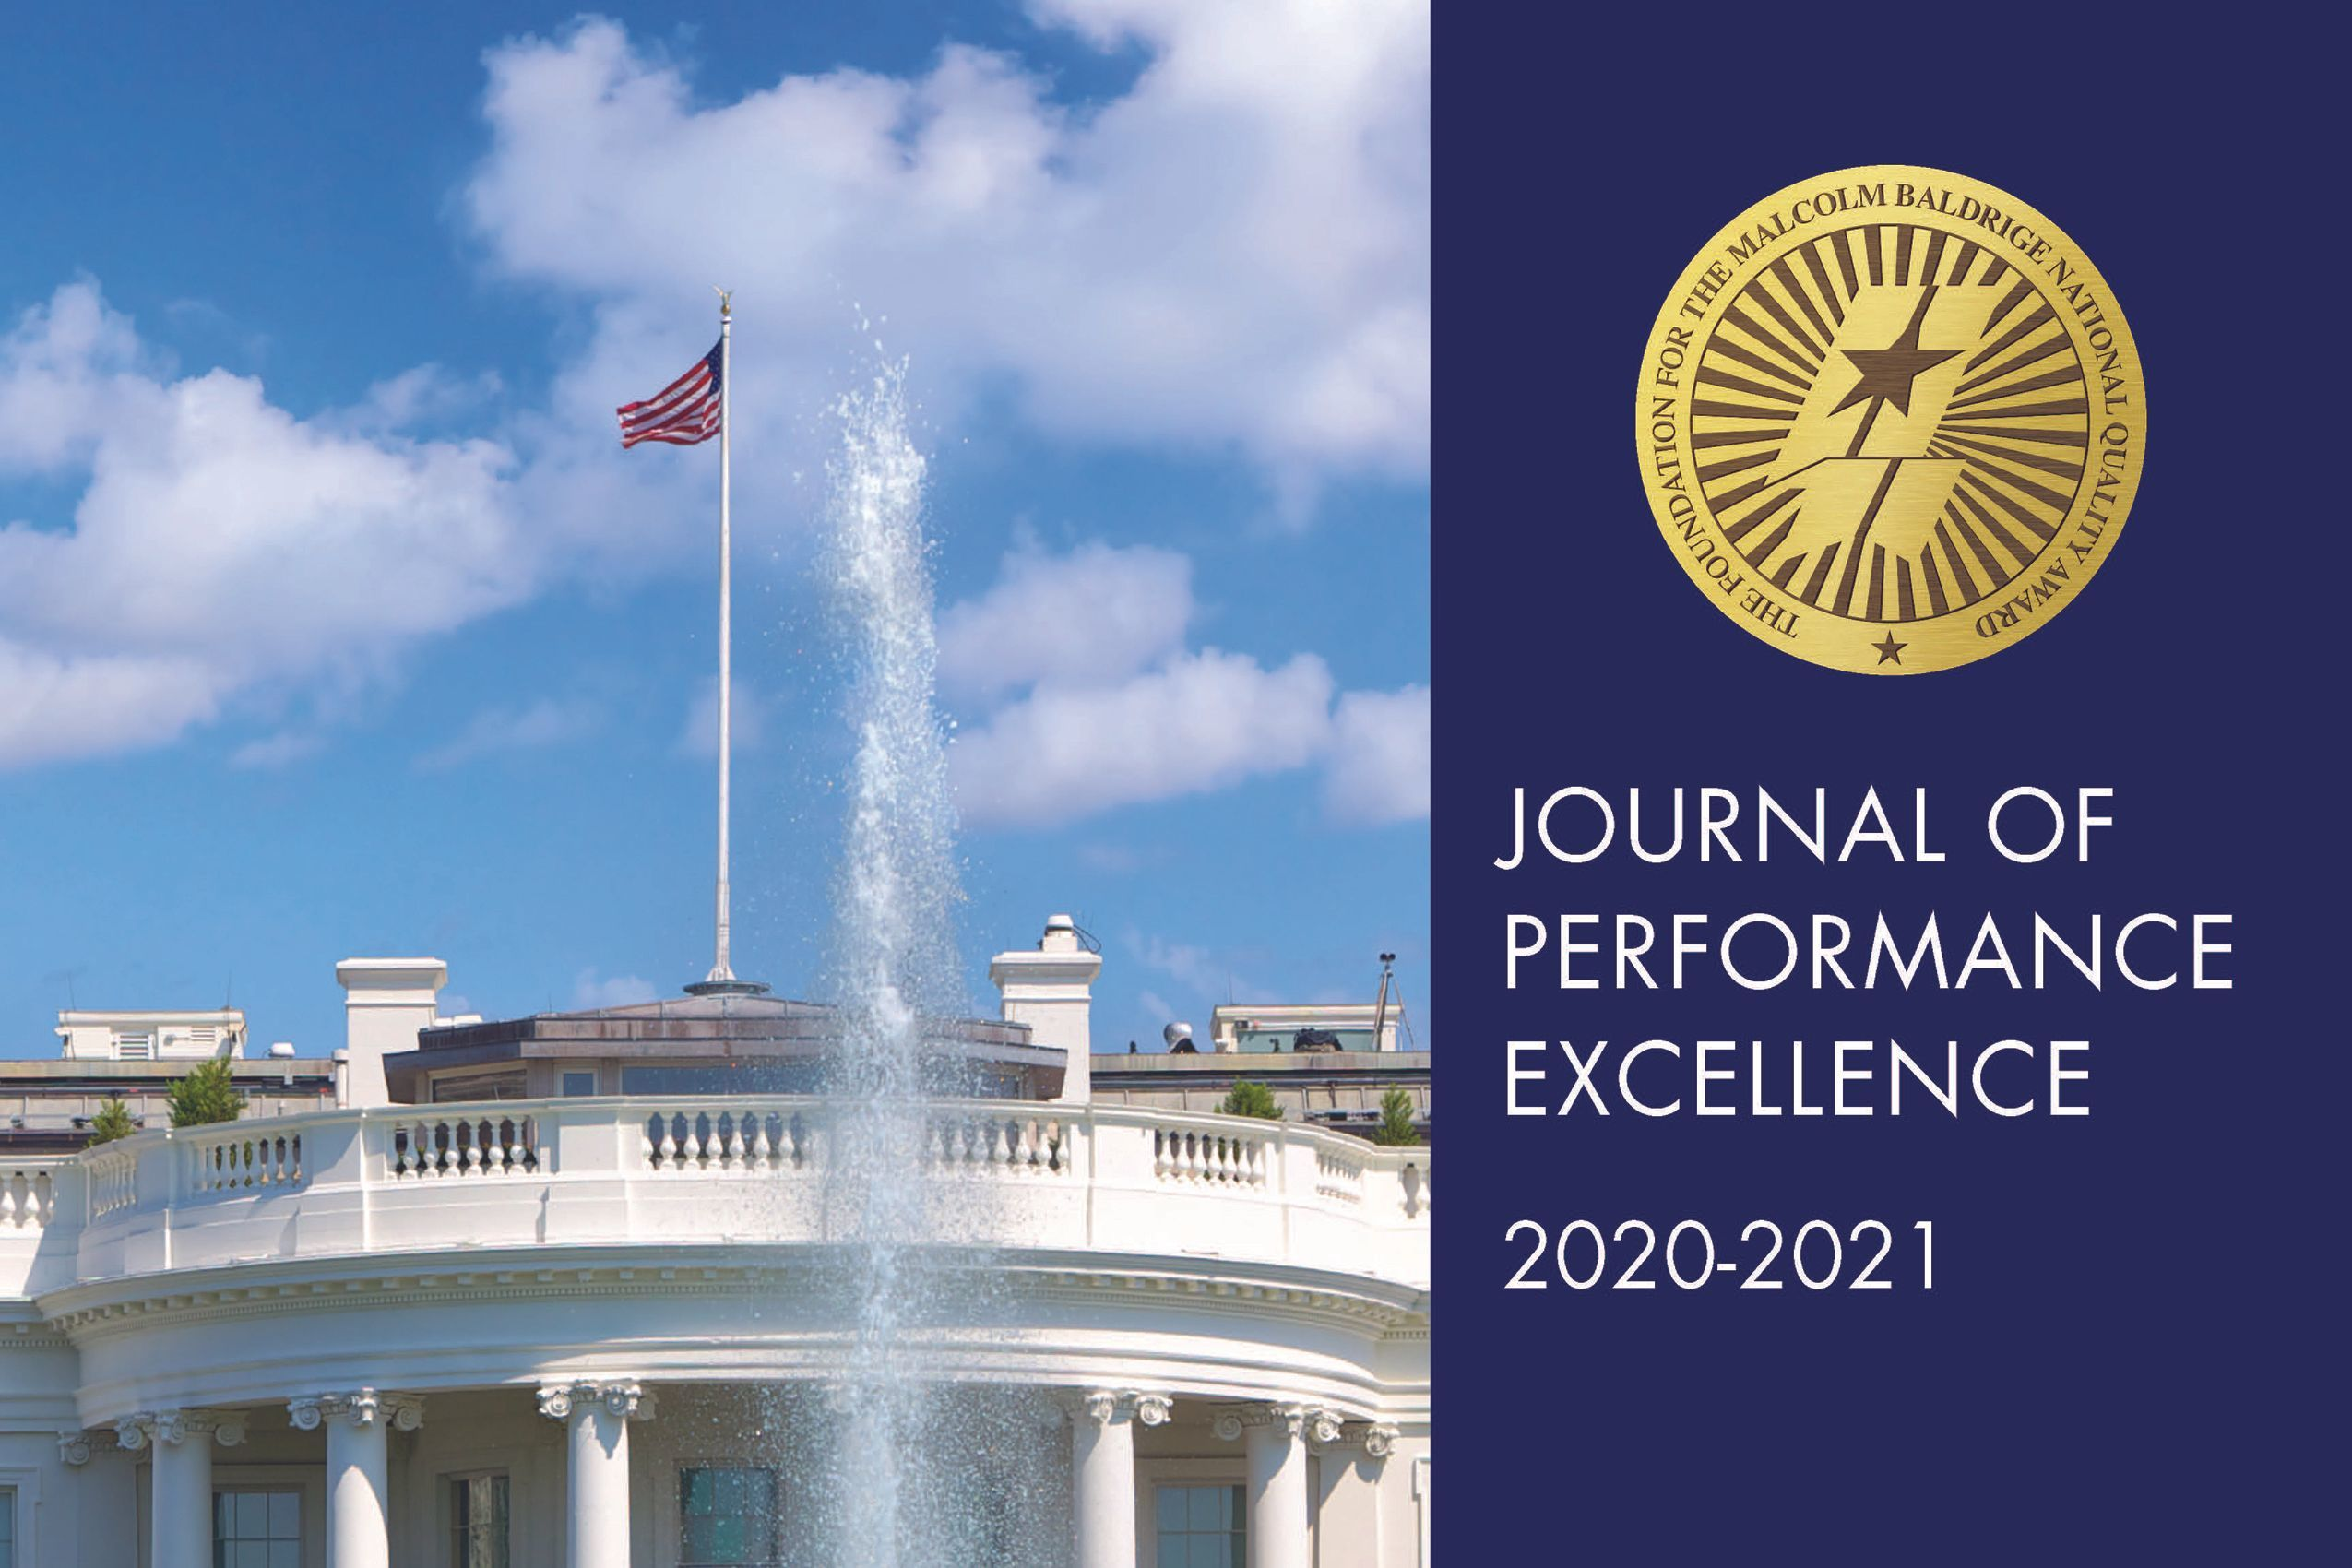 Download the Journal of Performance Excellence